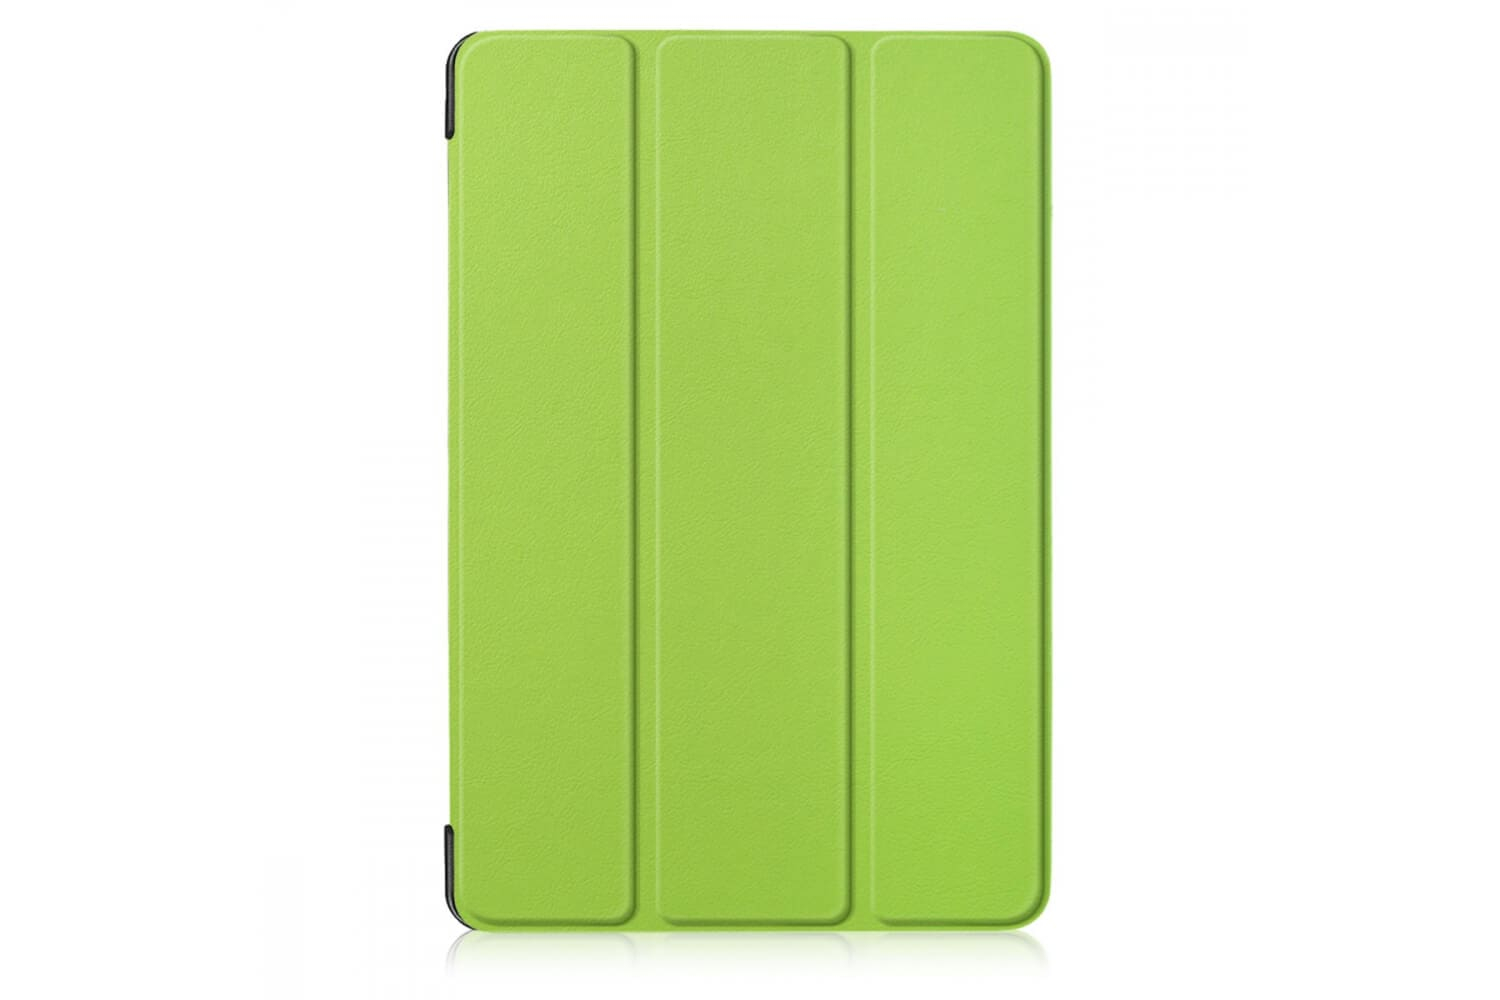 samsung galaxy tab a 10.5 book cover case green